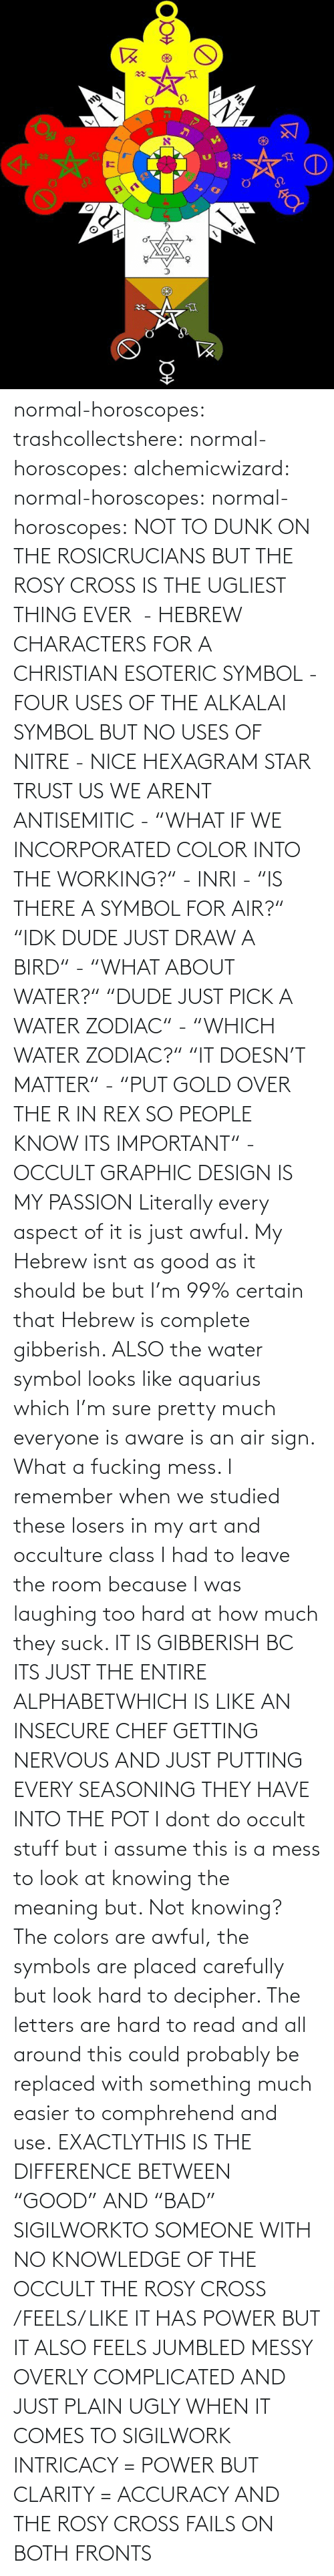 "complicated: normal-horoscopes:  trashcollectshere: normal-horoscopes:   alchemicwizard:  normal-horoscopes:  normal-horoscopes: NOT TO DUNK ON THE ROSICRUCIANS BUT THE ROSY CROSS IS THE UGLIEST THING EVER  - HEBREW CHARACTERS FOR A CHRISTIAN ESOTERIC SYMBOL - FOUR USES OF THE ALKALAI SYMBOL BUT NO USES OF NITRE - NICE HEXAGRAM STAR TRUST US WE ARENT ANTISEMITIC - ""WHAT IF WE INCORPORATED COLOR INTO THE WORKING?"" - INRI - ""IS THERE A SYMBOL FOR AIR?"" ""IDK DUDE JUST DRAW A BIRD"" - ""WHAT ABOUT WATER?"" ""DUDE JUST PICK A WATER ZODIAC"" - ""WHICH WATER ZODIAC?"" ""IT DOESN'T MATTER"" - ""PUT GOLD OVER THE R IN REX SO PEOPLE KNOW ITS IMPORTANT"" - OCCULT GRAPHIC DESIGN IS MY PASSION  Literally every aspect of it is just awful. My Hebrew isnt as good as it should be but I'm 99% certain that Hebrew is complete gibberish.  ALSO the water symbol looks like aquarius which I'm sure pretty much everyone is aware is an air sign. What a fucking mess.  I remember when we studied these losers in my art and occulture class I had to leave the room because I was laughing too hard at how much they suck.   IT IS GIBBERISH BC ITS JUST THE ENTIRE ALPHABETWHICH IS LIKE AN INSECURE CHEF GETTING NERVOUS AND JUST PUTTING EVERY SEASONING THEY HAVE INTO THE POT     I dont do occult stuff but i assume this is a mess to look at knowing the meaning but. Not knowing? The colors are awful, the symbols are placed carefully but look hard to decipher. The letters are hard to read and all around this could probably be replaced with something much easier to comphrehend and use.  EXACTLYTHIS IS THE DIFFERENCE BETWEEN ""GOOD"" AND ""BAD"" SIGILWORKTO SOMEONE WITH NO KNOWLEDGE OF THE OCCULT THE ROSY CROSS /FEELS/ LIKE IT HAS POWER BUT IT ALSO FEELS JUMBLED MESSY OVERLY COMPLICATED AND JUST PLAIN UGLY WHEN IT COMES TO SIGILWORK INTRICACY = POWER BUT CLARITY = ACCURACY AND THE ROSY CROSS FAILS ON BOTH FRONTS"